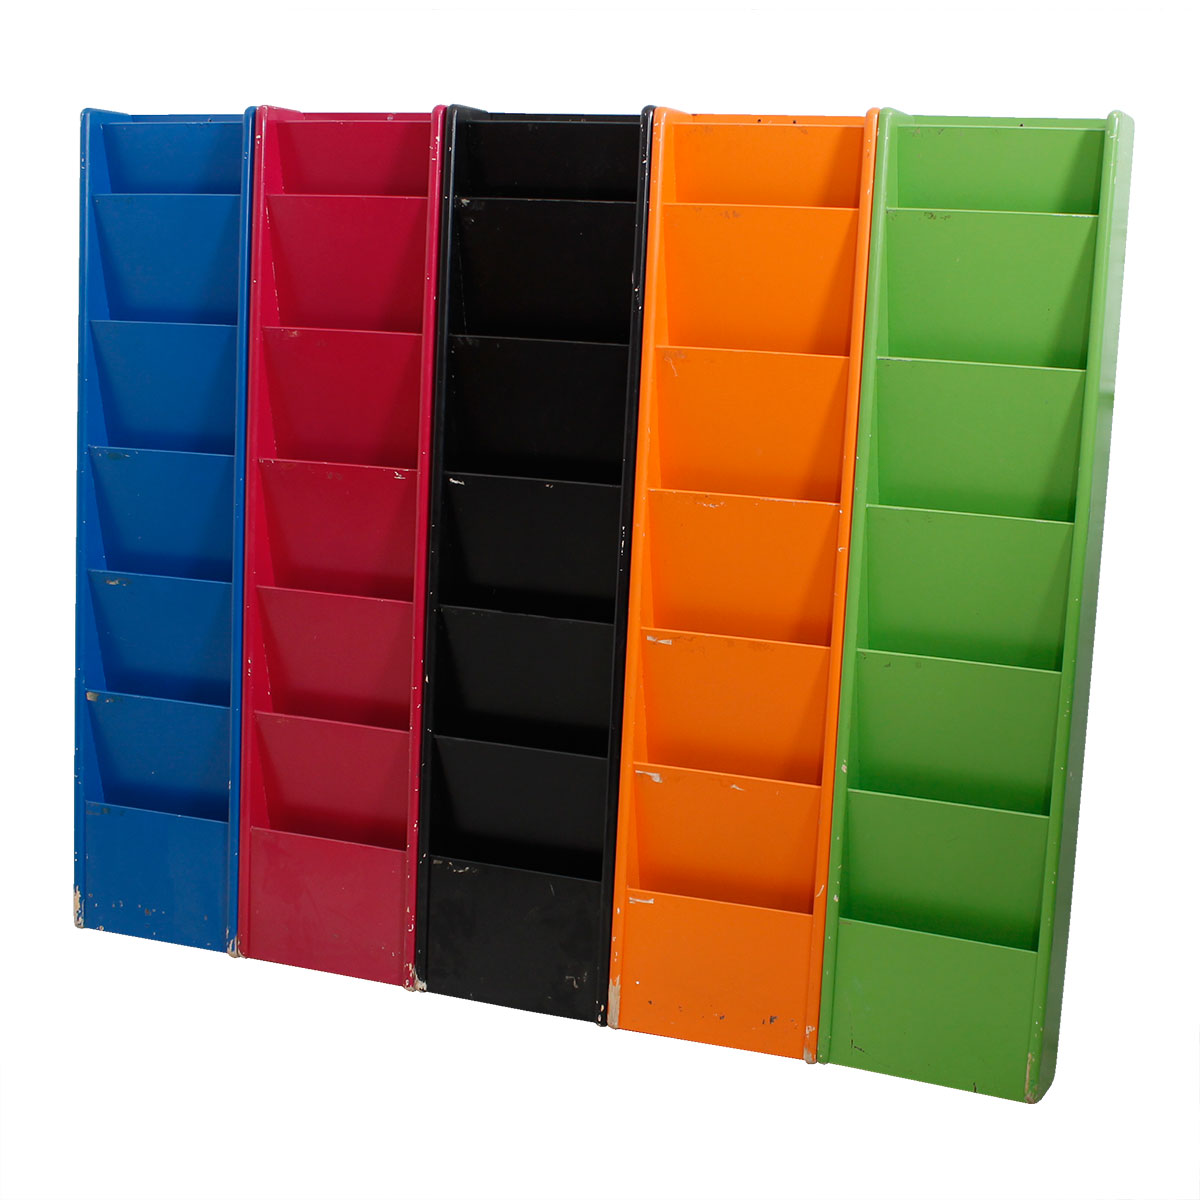 Set of 5 Multicolored Tall Hanging Bookcases / File Organizers